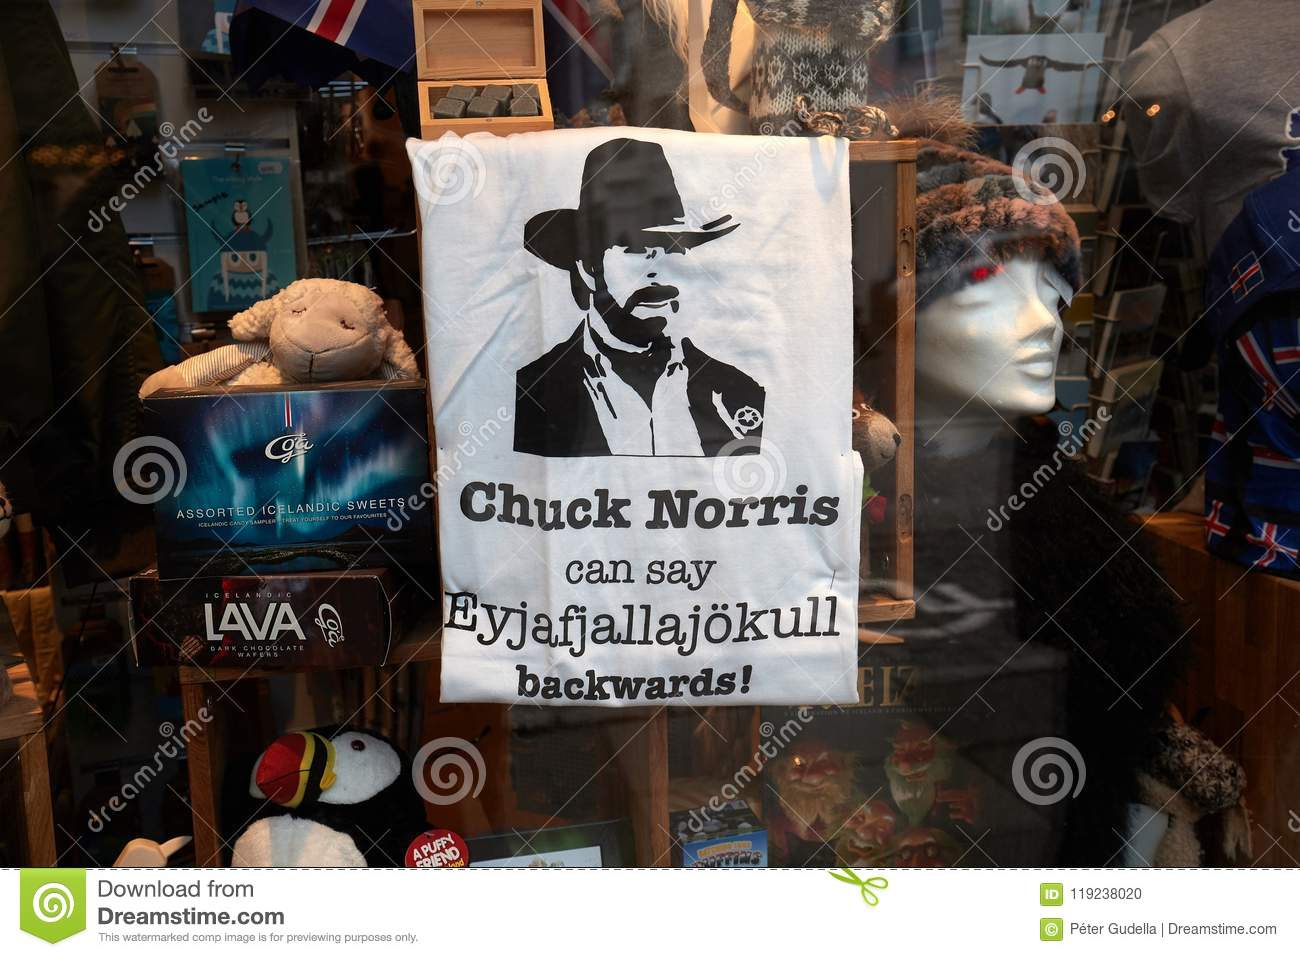 19c8c59134 REYKJAVIK, ICELAND - MAY 05, 2018: T-shirt in a shop window for icelandic  souvenir. Chuck Norris can say Eyjafjallajokul backwards The volcano that  erupted ...